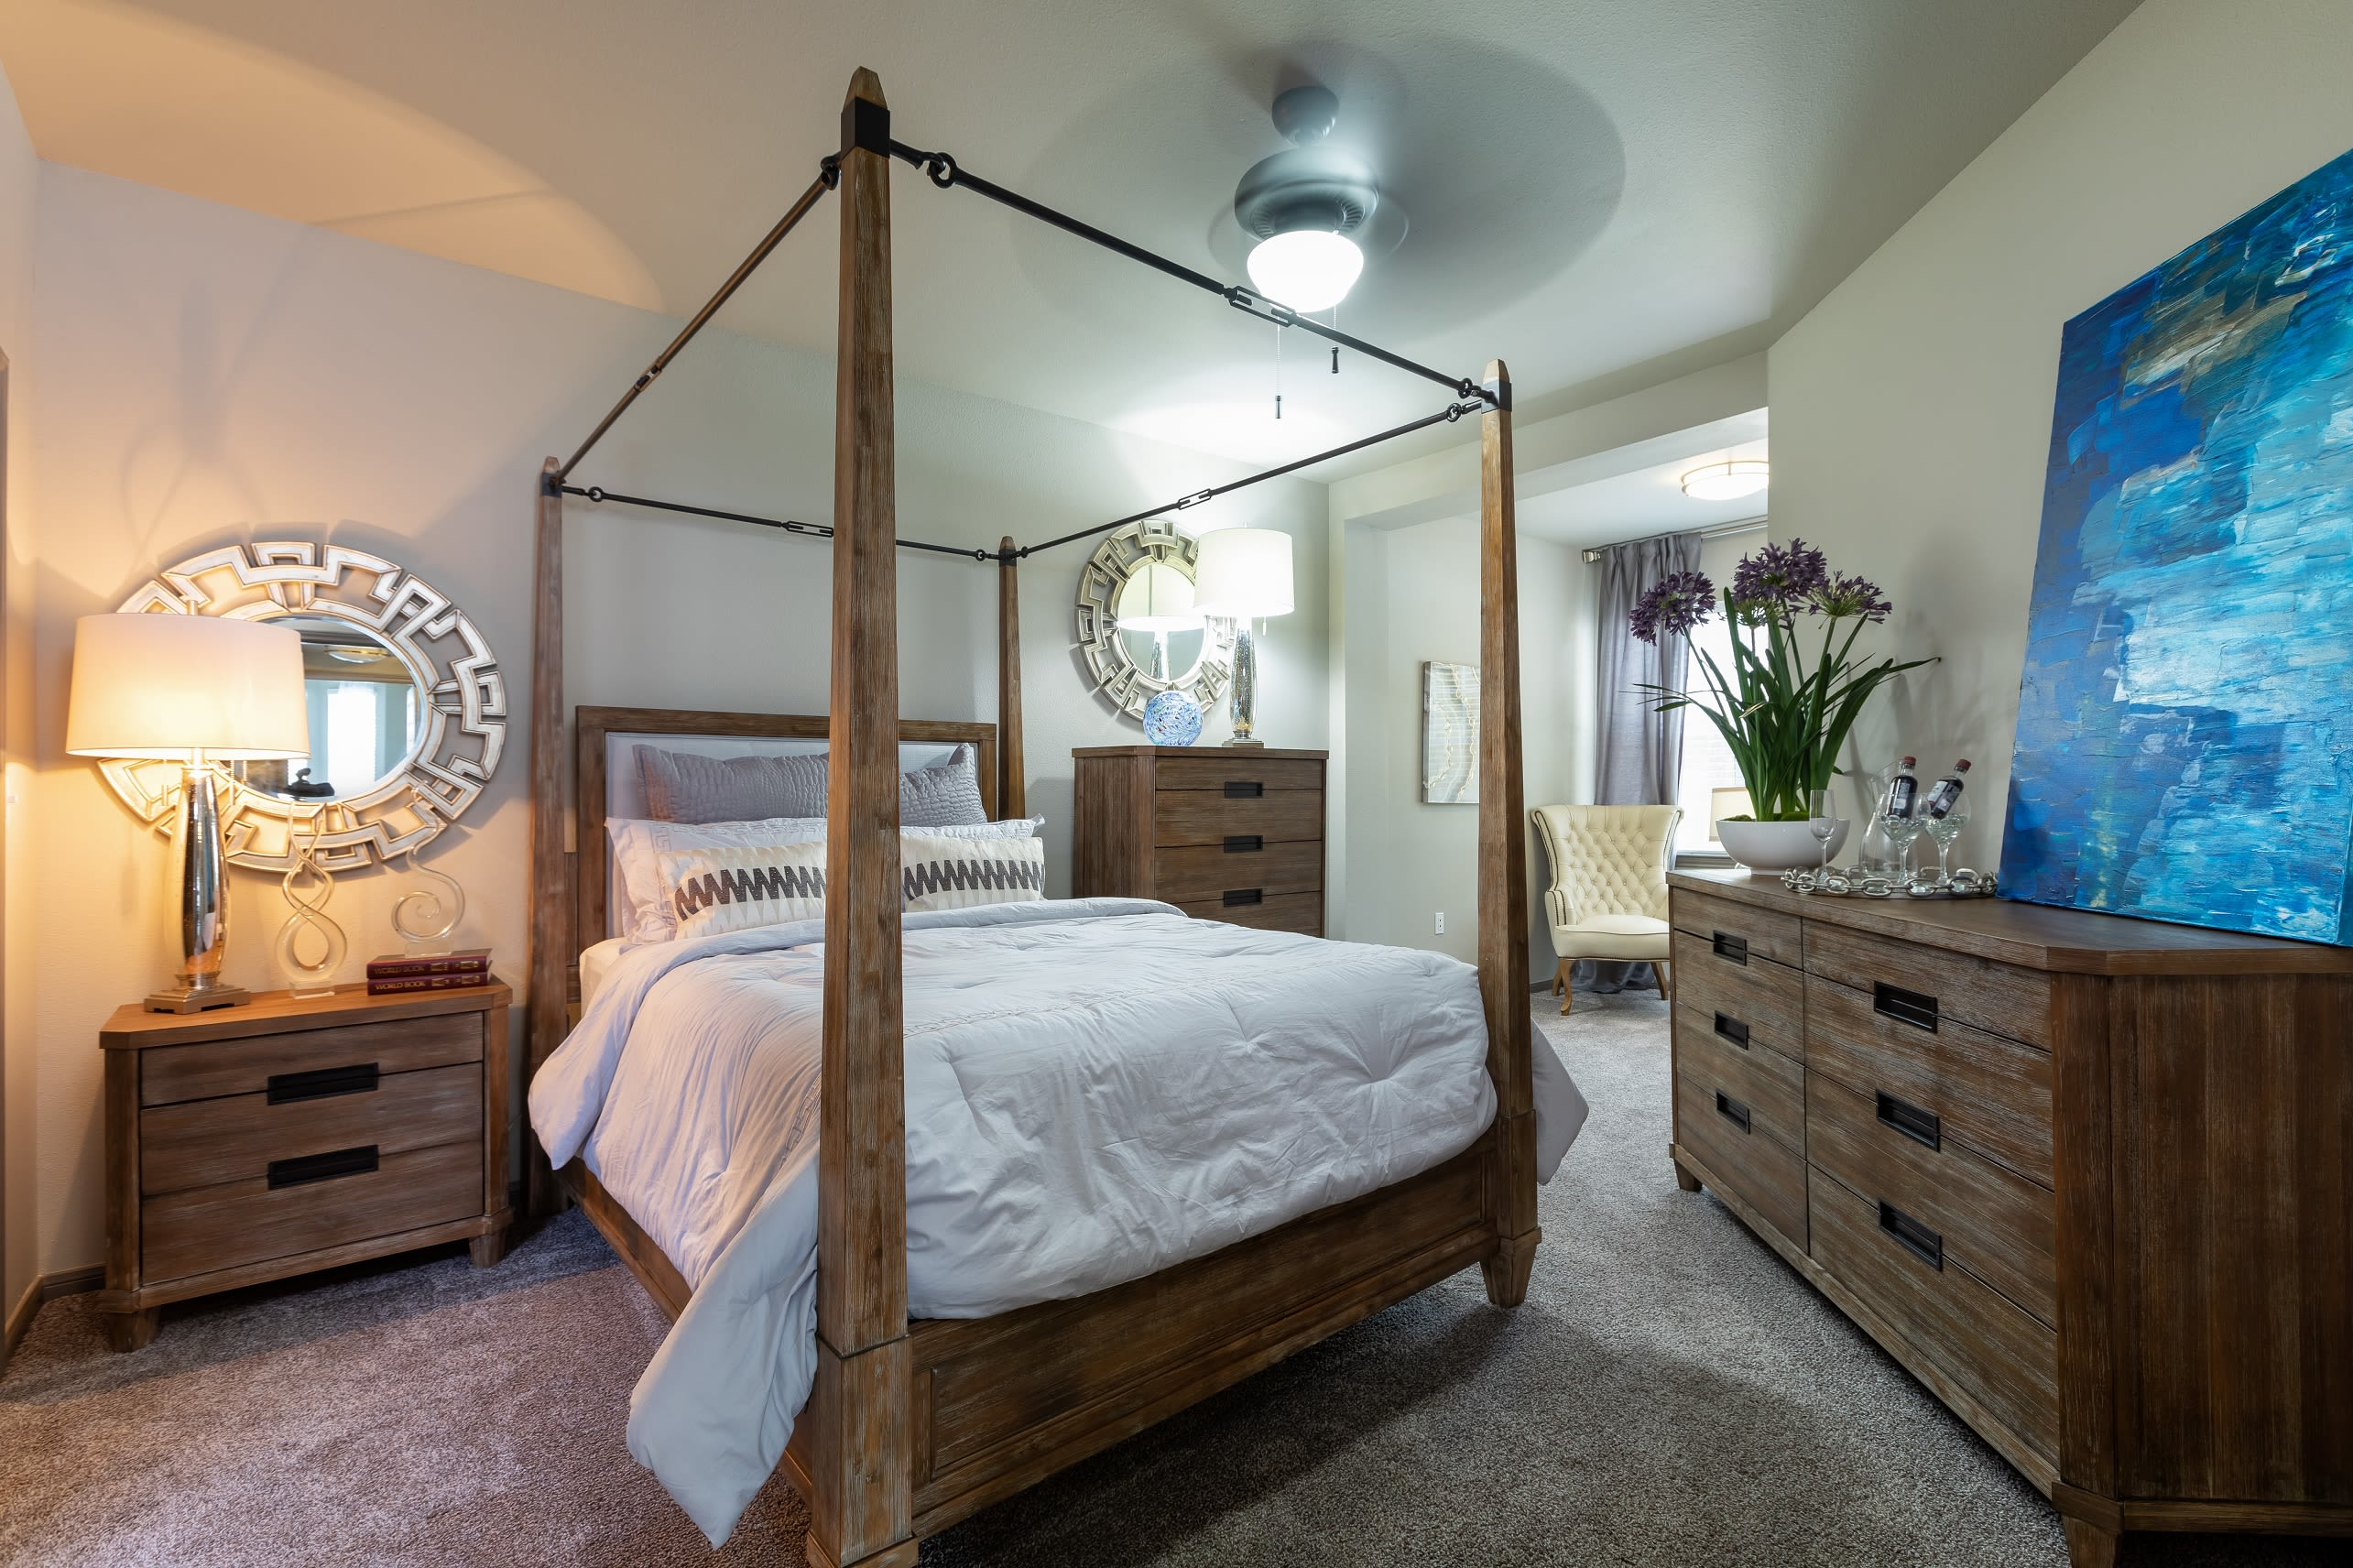 Very large main bedroom with wooden furnishings at Artisan at Lake Wyndemere in The Woodlands, Texas